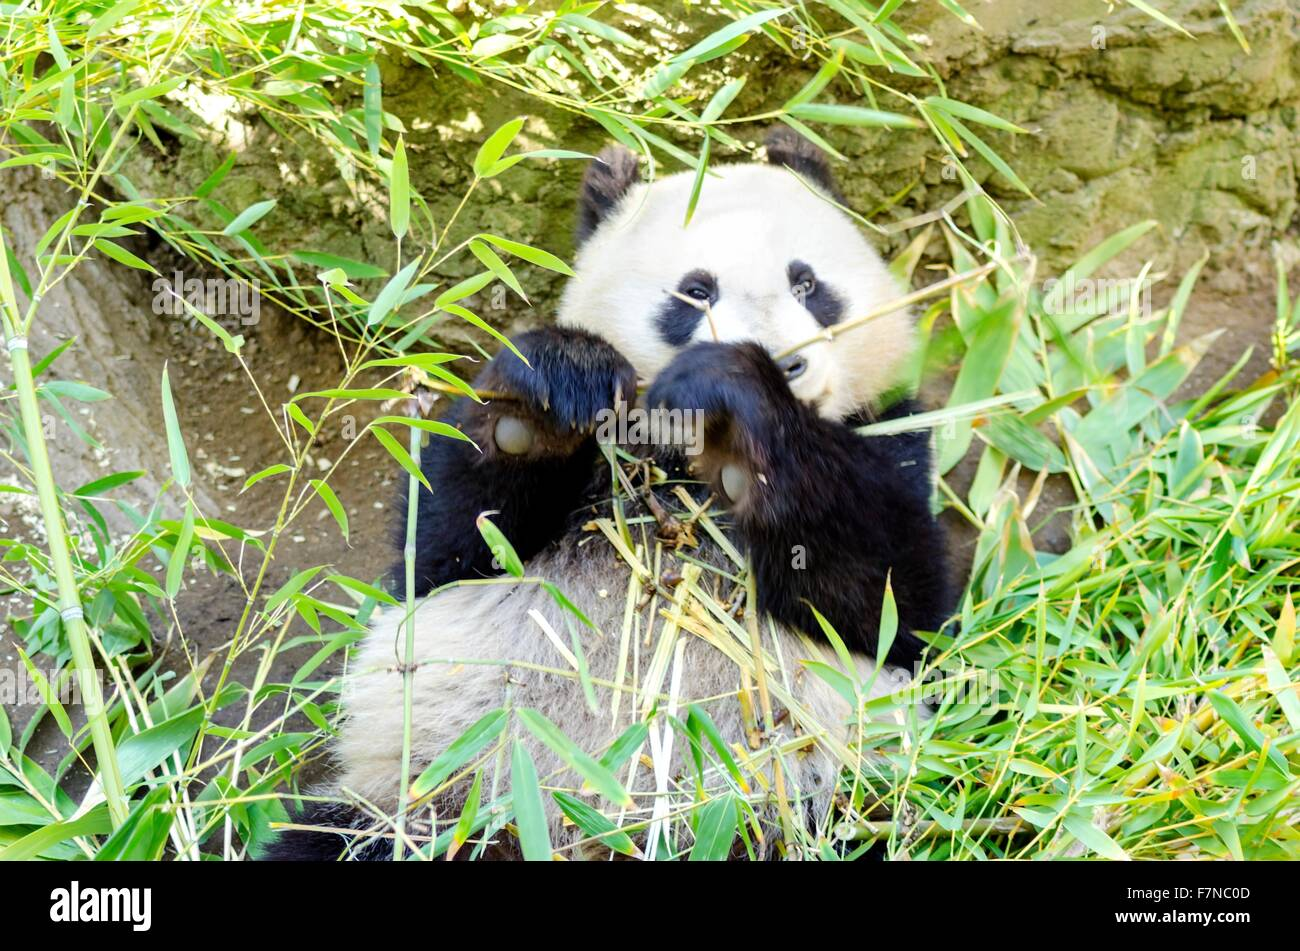 A cute adorable lazy baby giant Panda bear eating bamboo. The Ailuropoda melanoleuca is distinct by the large black - Stock Image